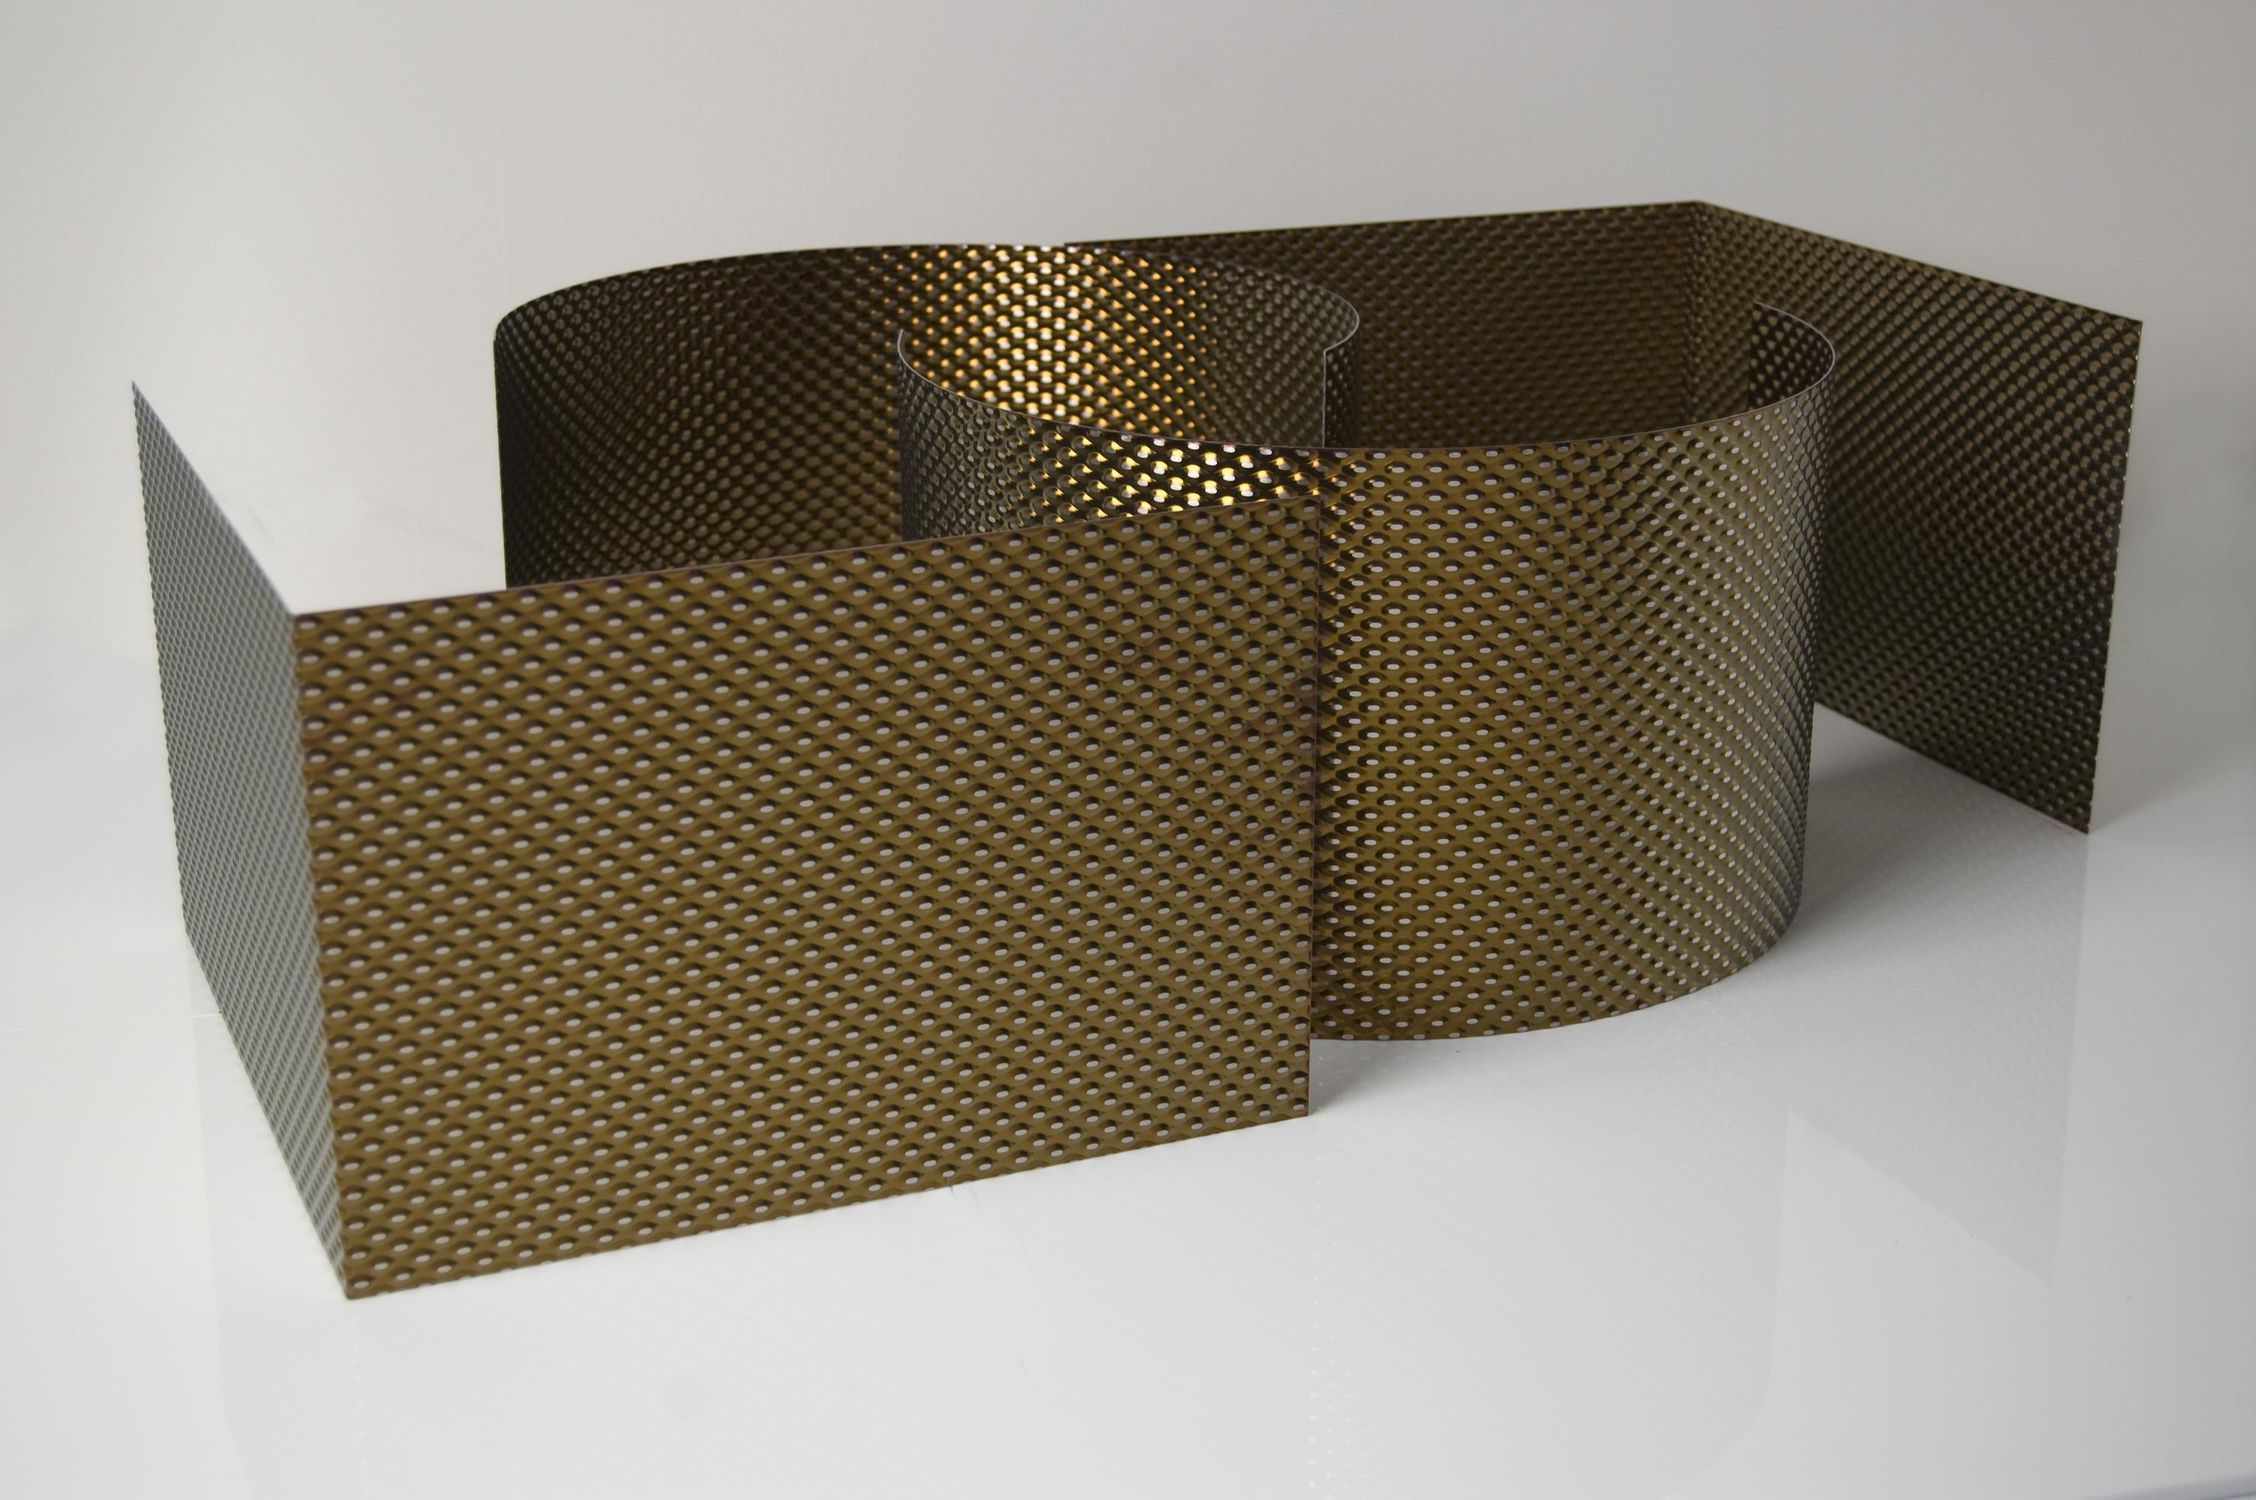 Patterned sheet metal / stainless steel / for facade cladding ...